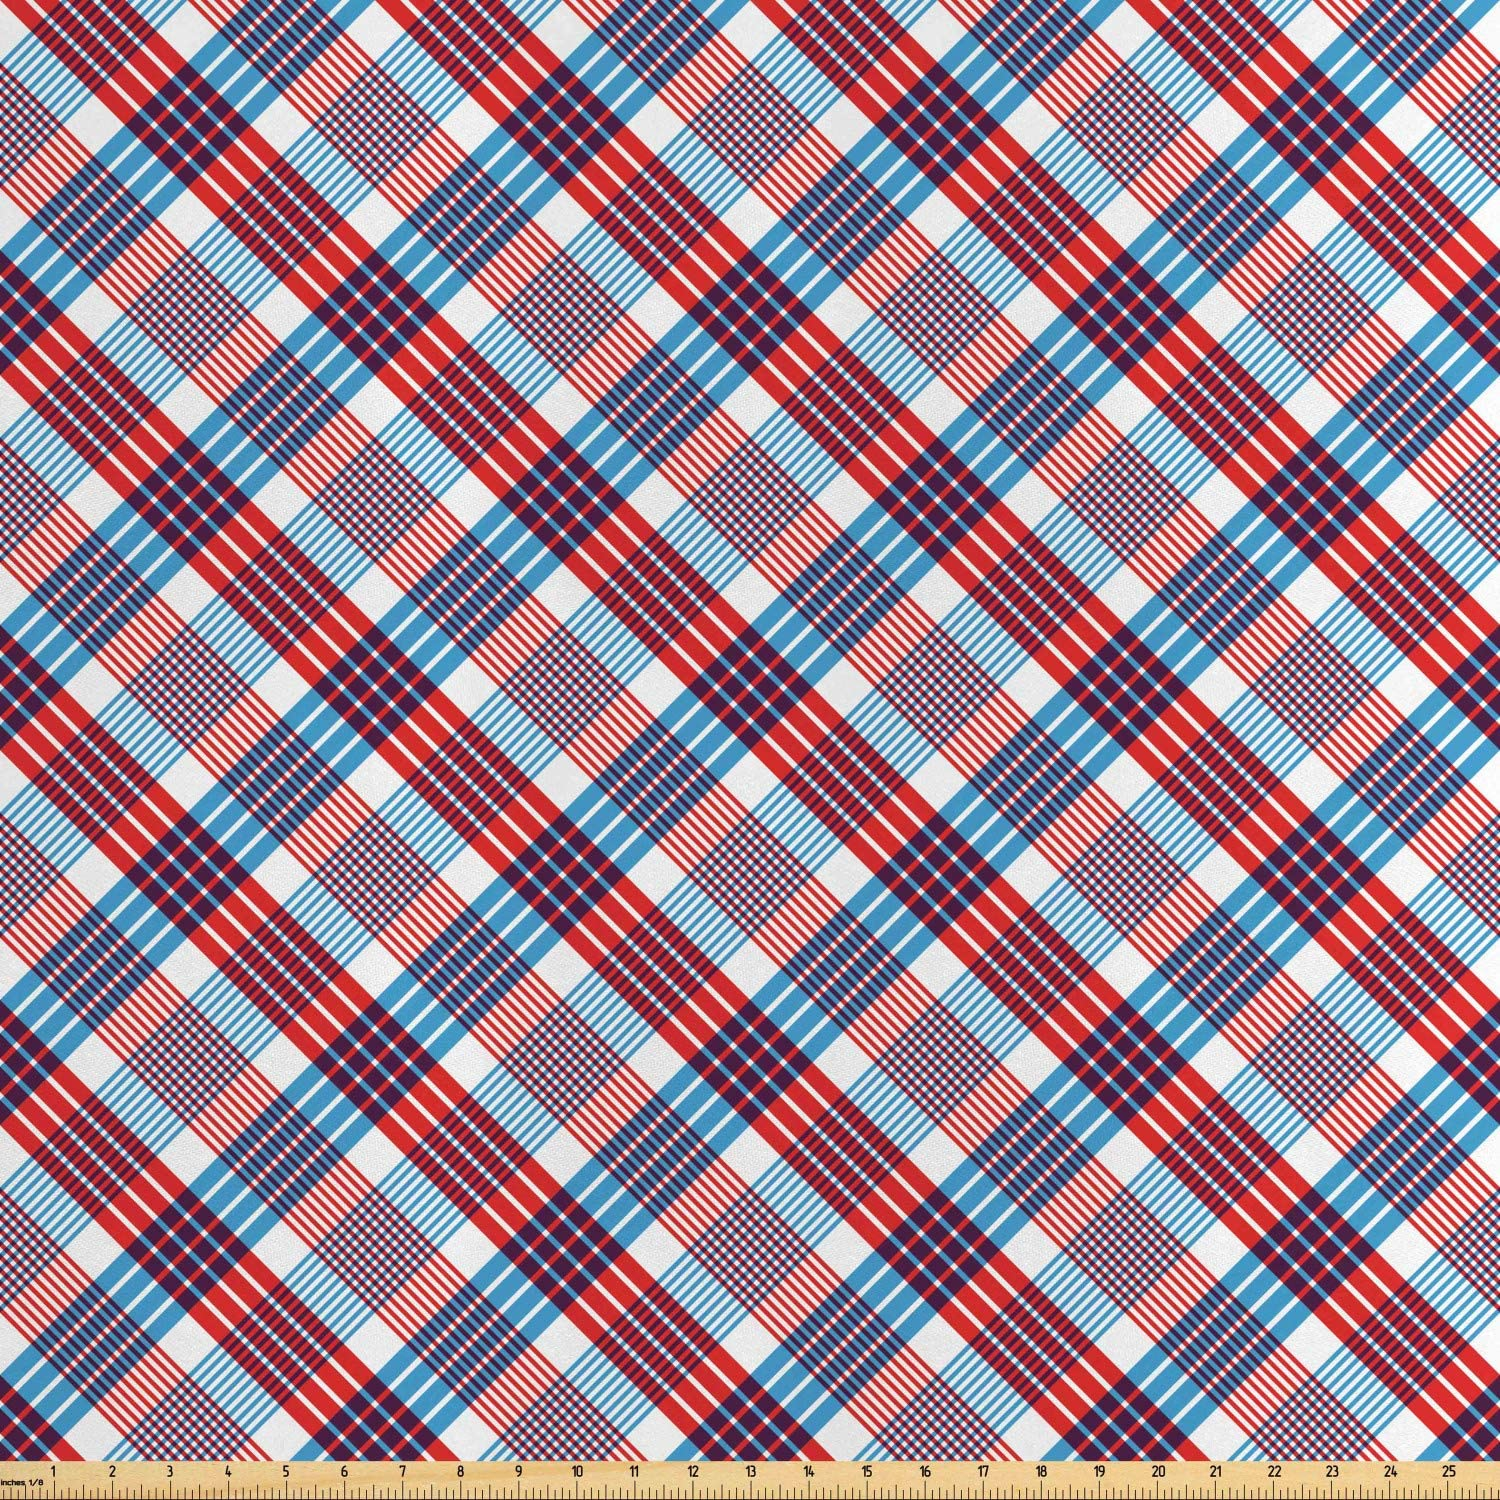 Ambesonne Plaid Fabric by The Yard, Checkered Pattern with Diagonal Stripes Antique Nostalgic Composition, Decorative Satin Fabric for Home Textiles and Crafts, Vermilion Navy Blue